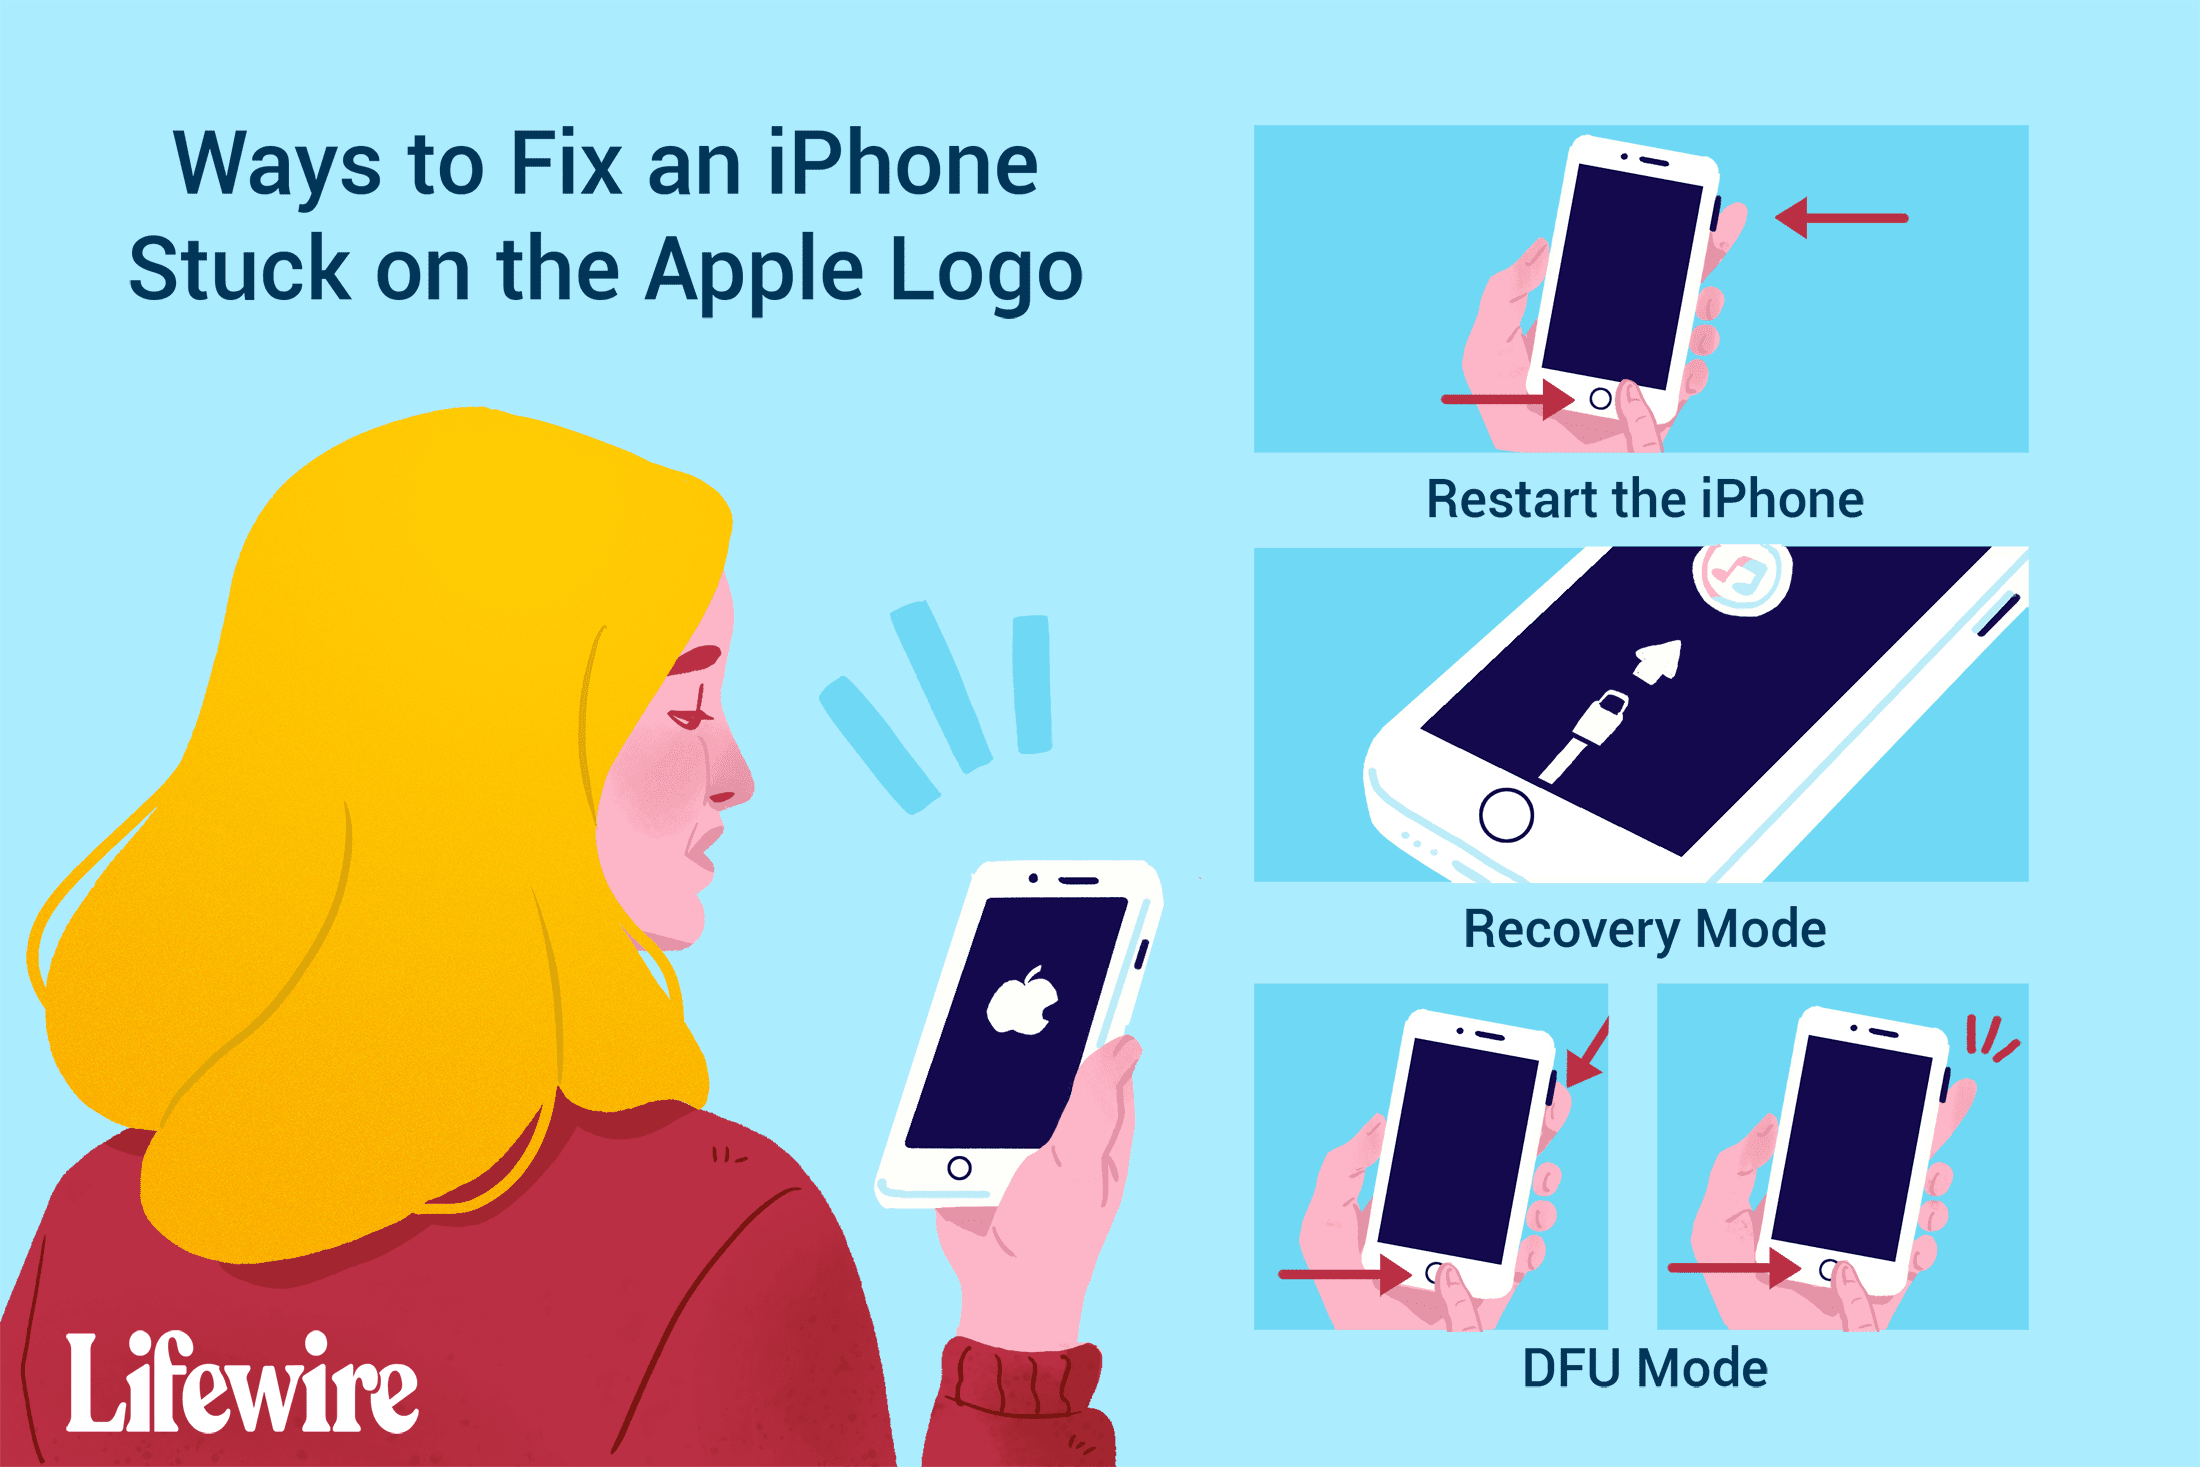 Ways to fix an iPhone stuck on the Apple logo.